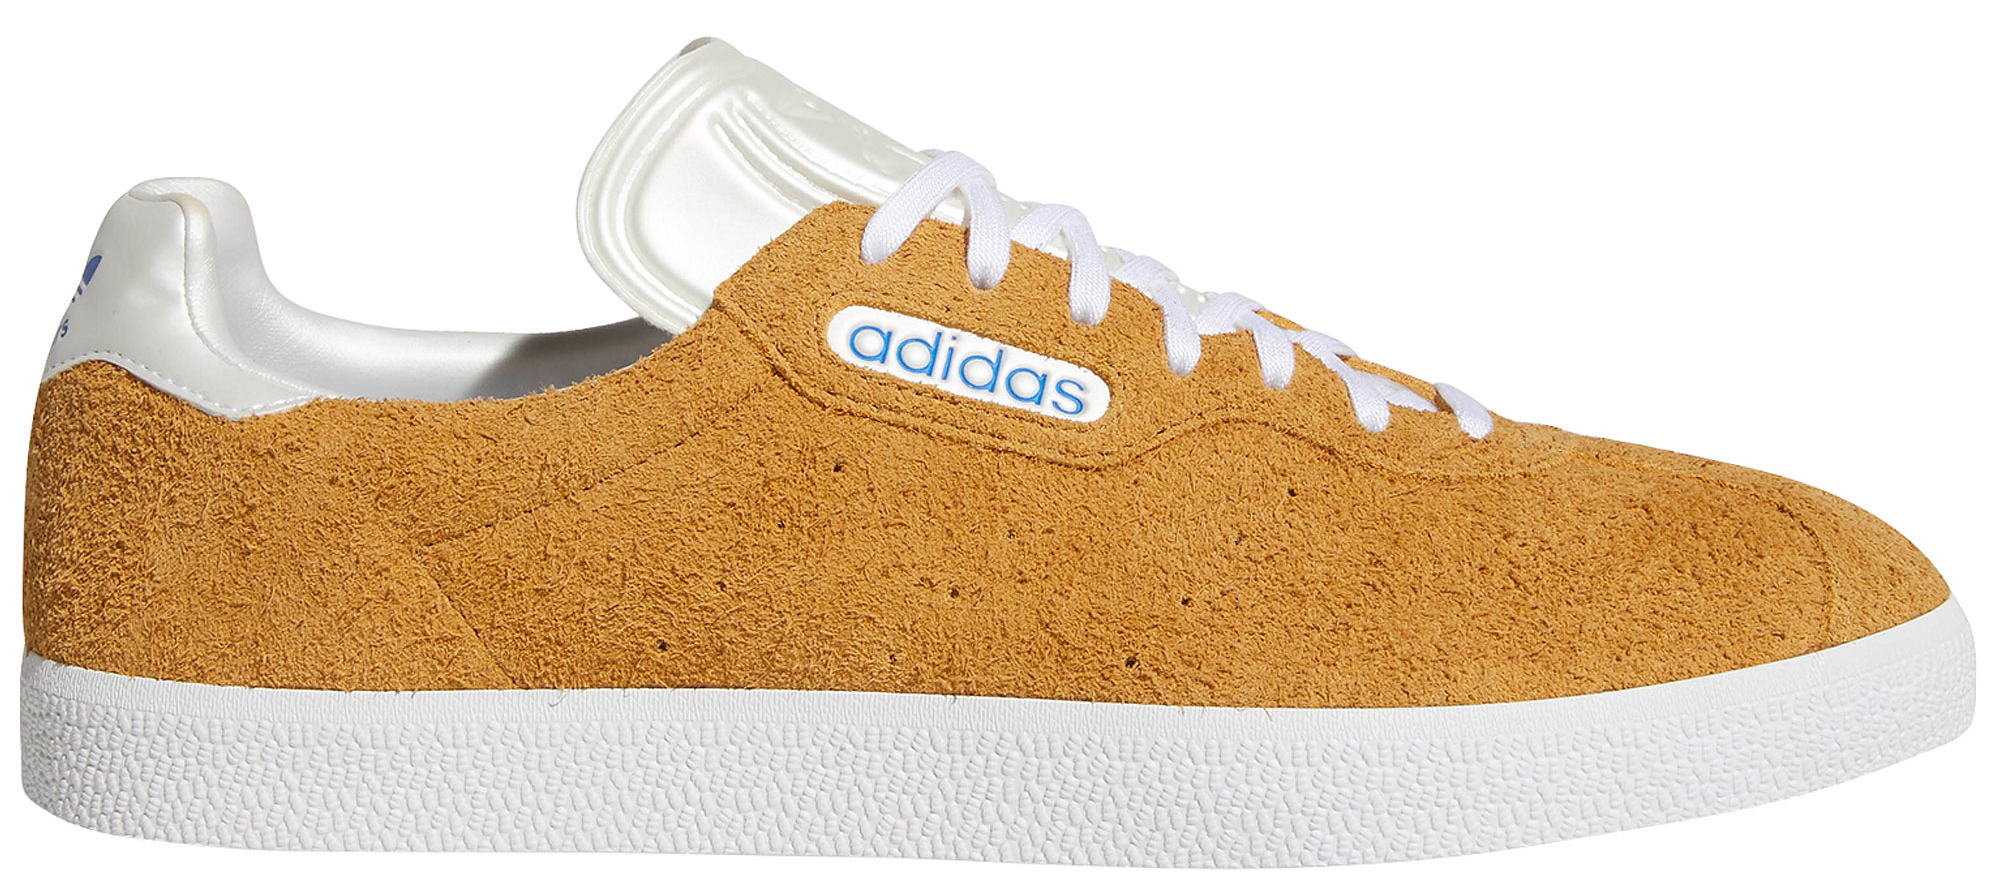 adidas Gazelle Super Alltimers